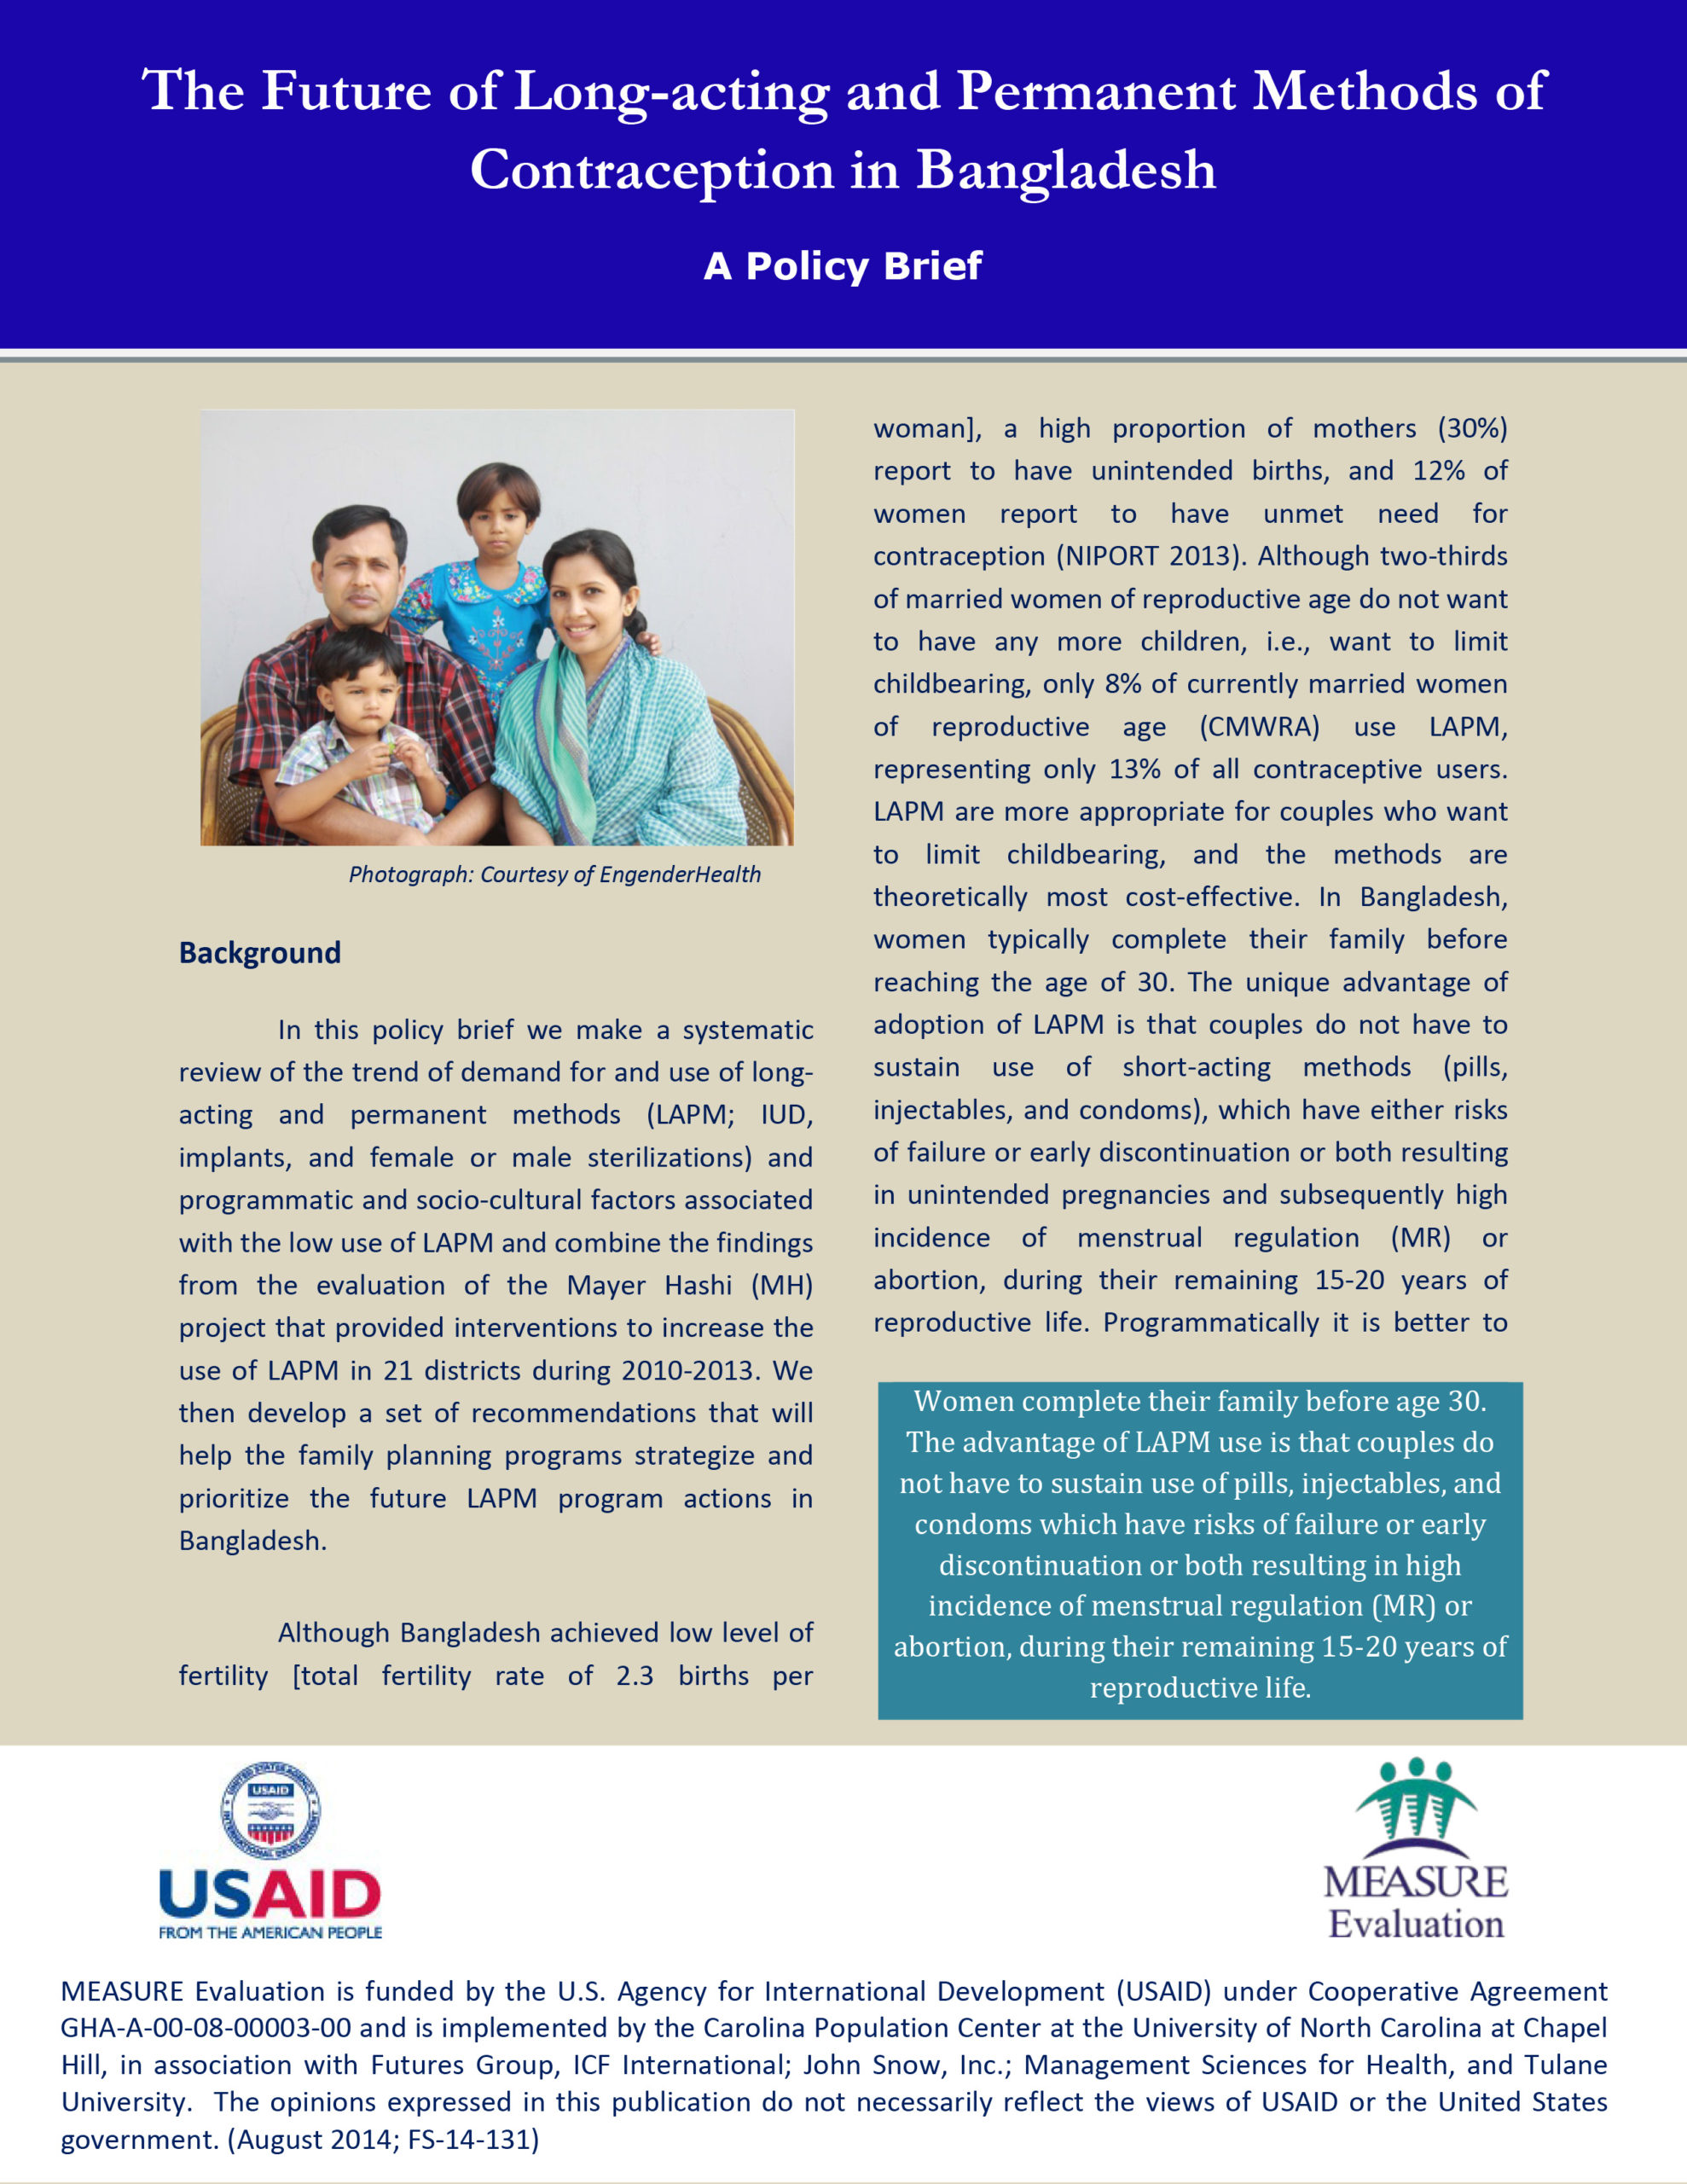 The Future of Long-Acting and Permanent Methods of Contraception in Bangladesh: A Policy Brief